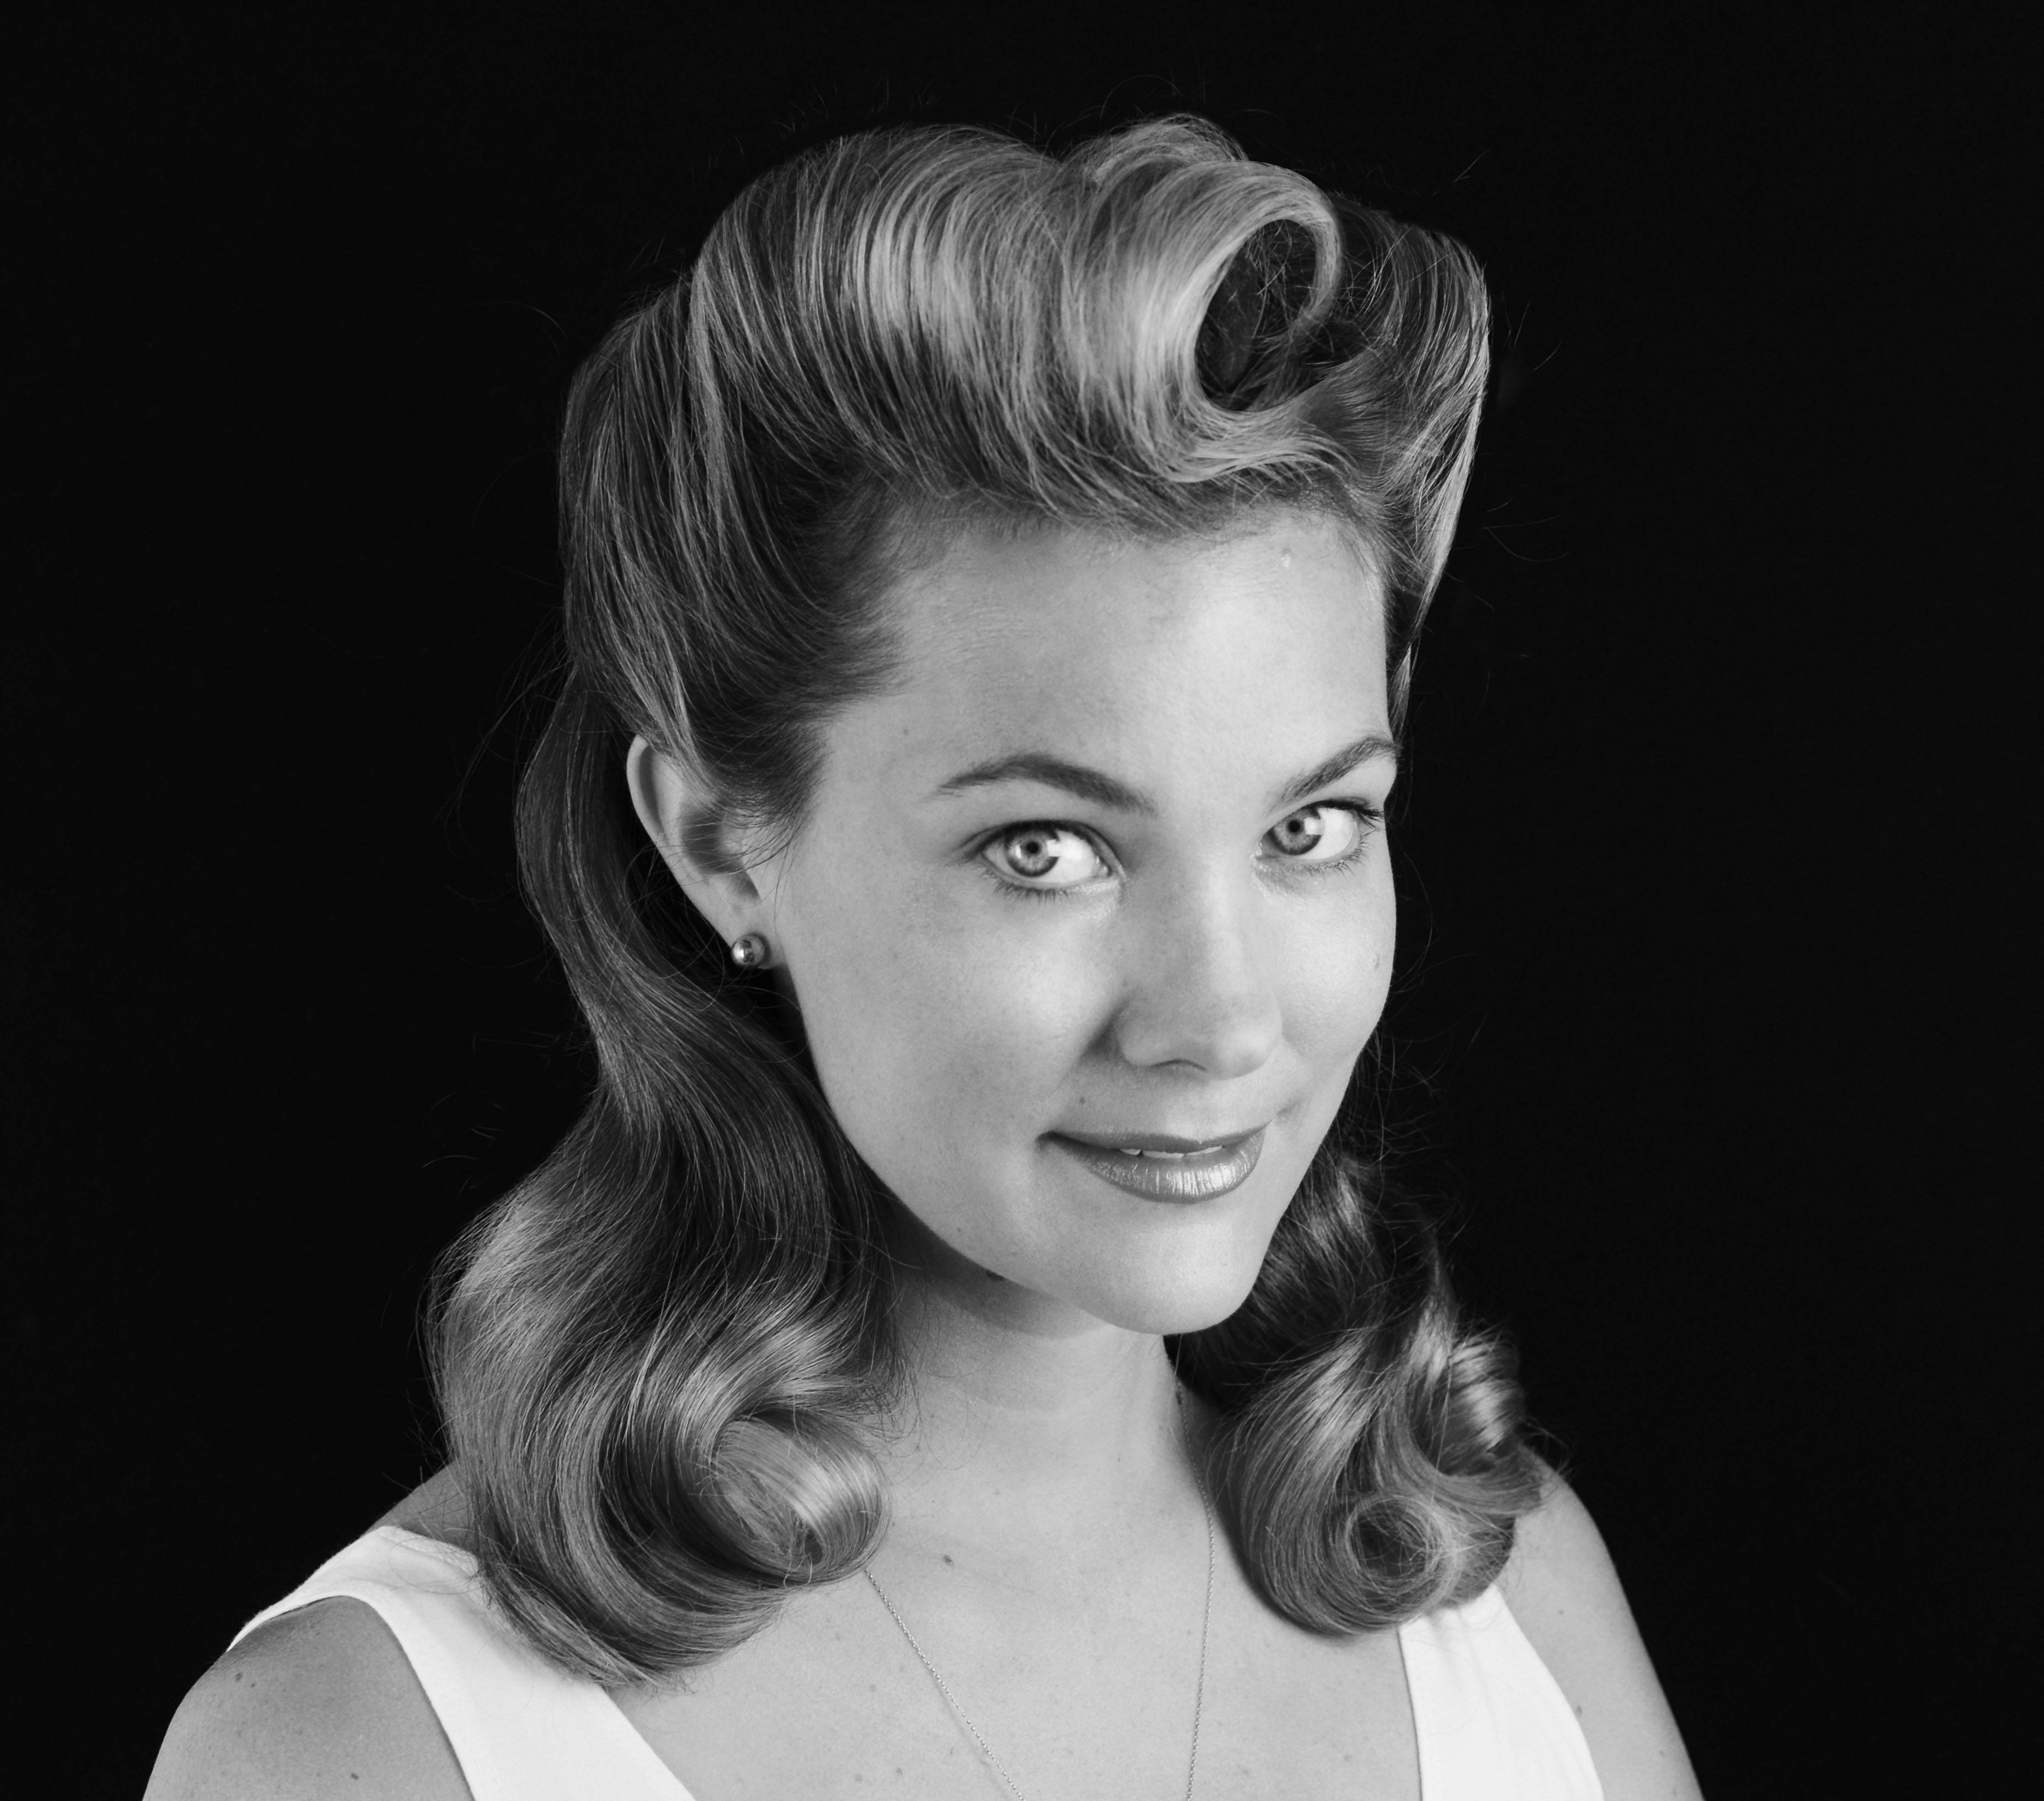 Get the Look 1940's Hairstylists, Makeup and 1940s hair